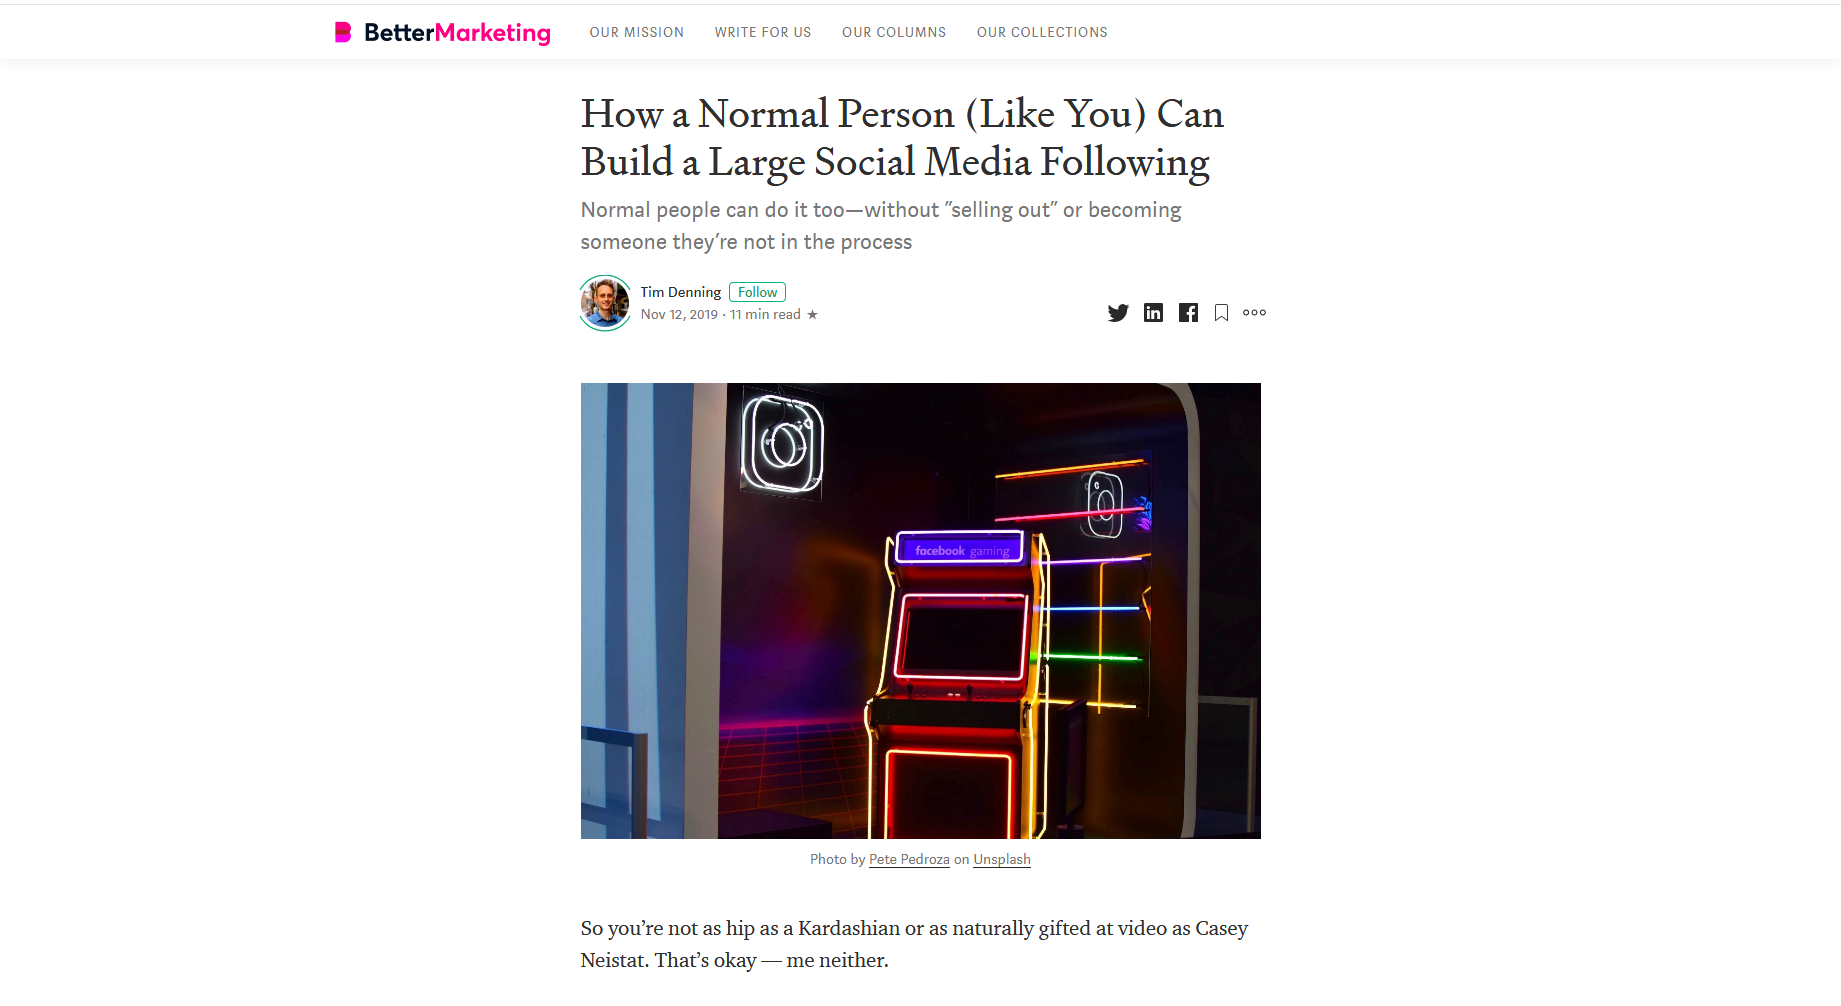 How a Normal Person (Like You) Can Build a Large Social Media Following